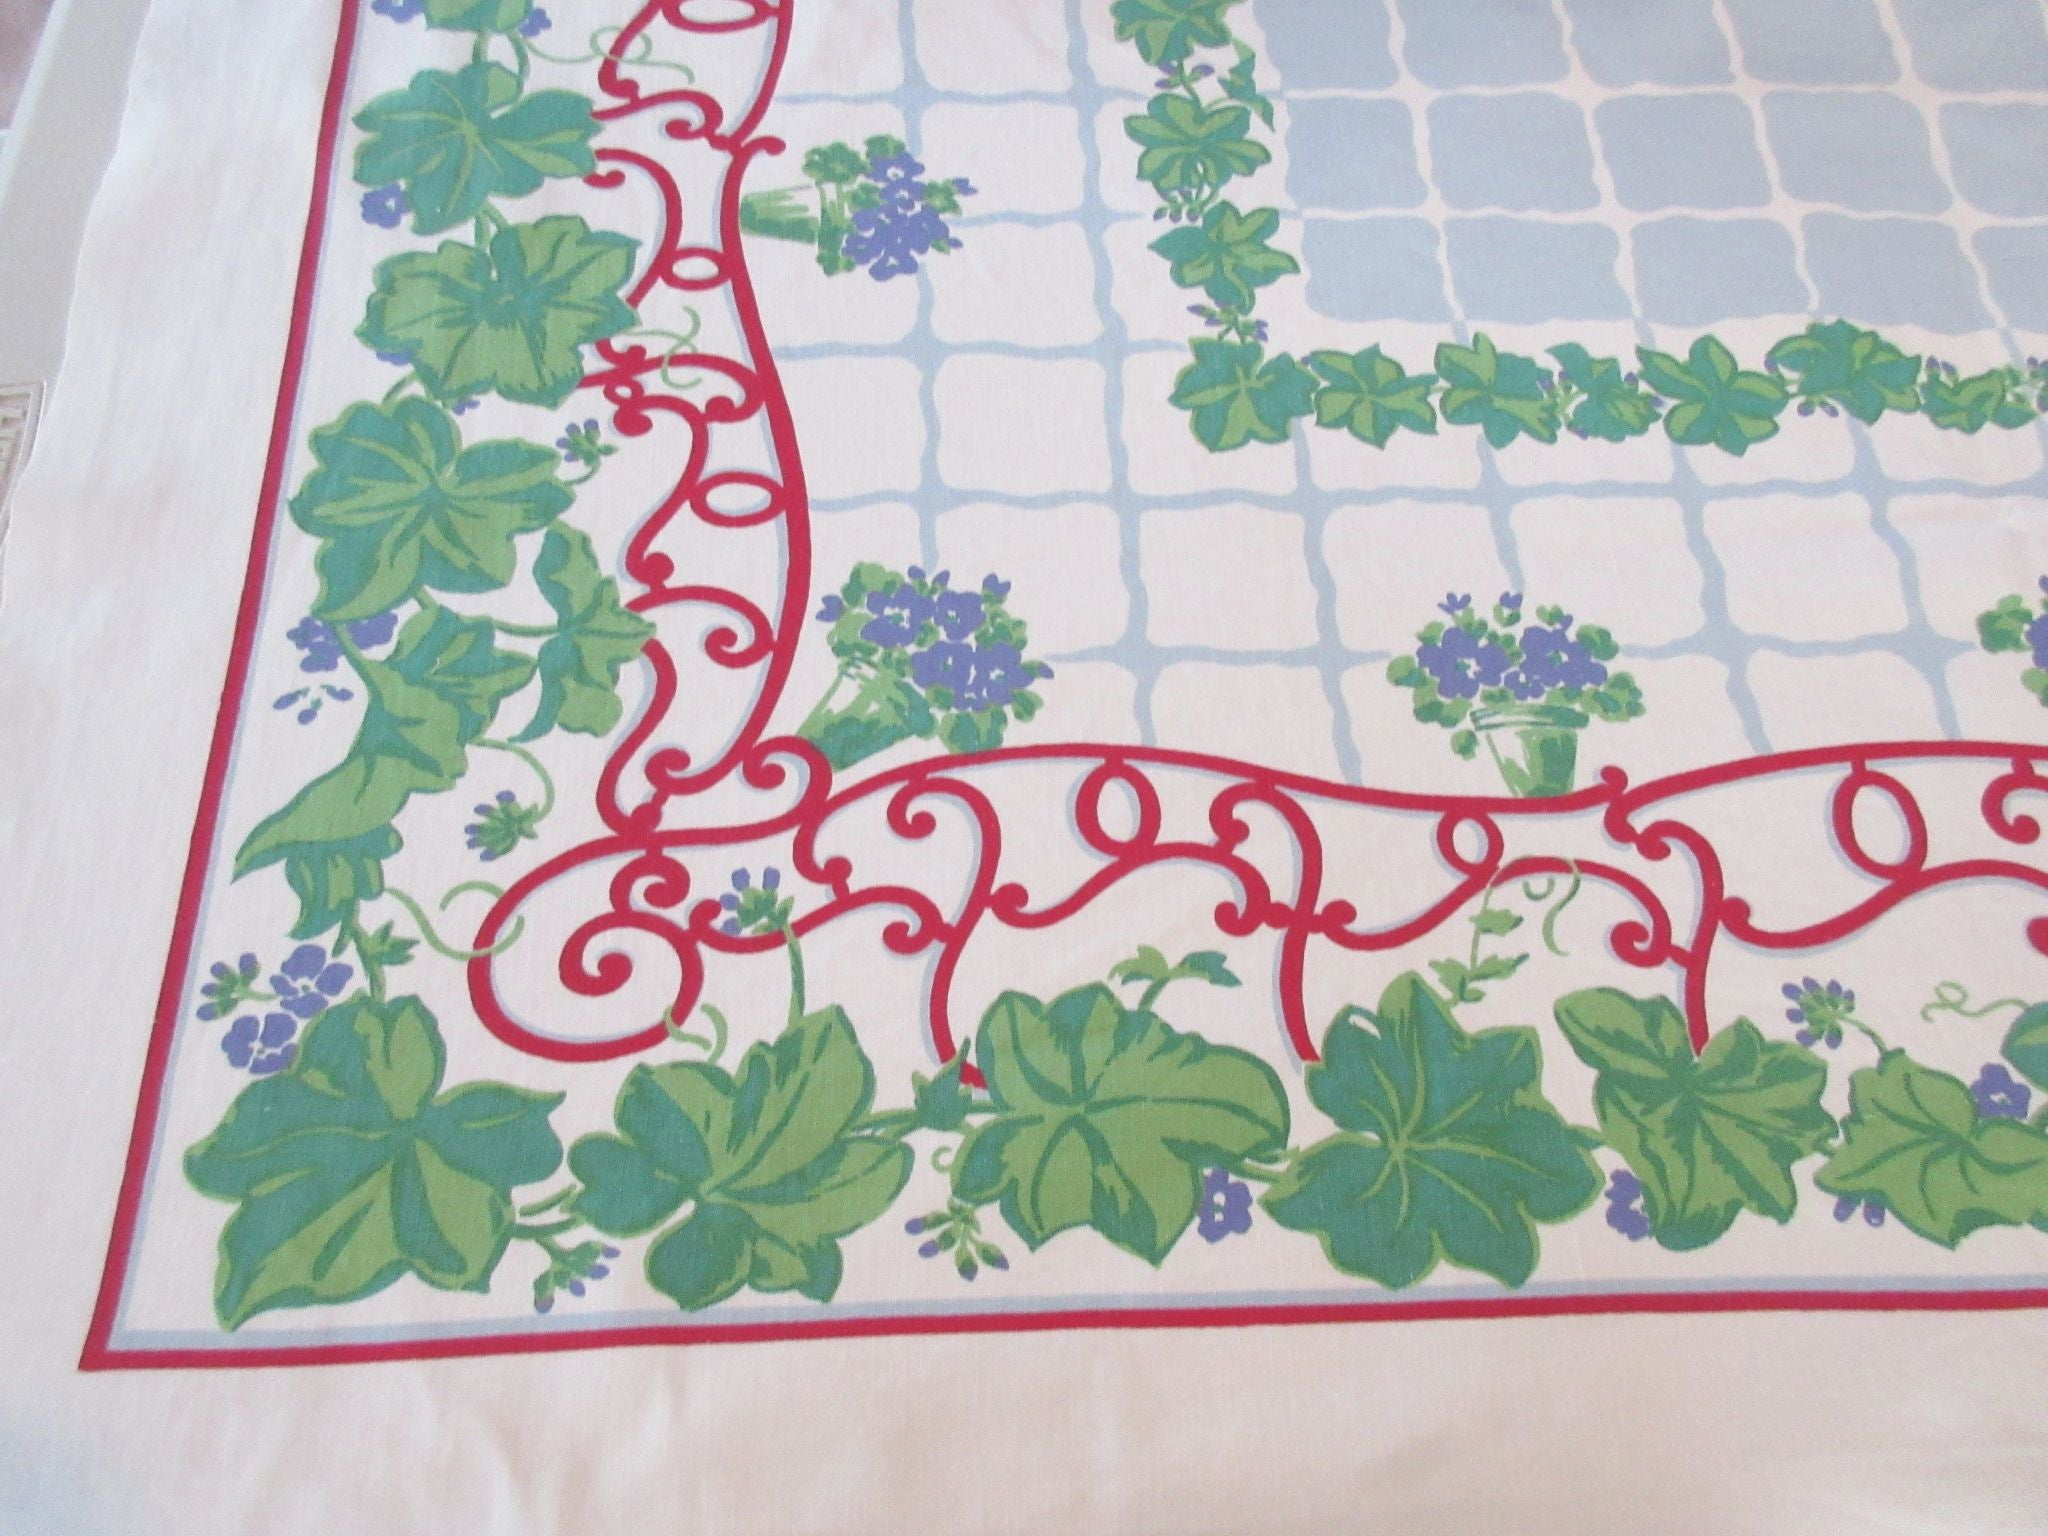 African Violets on Blue Parisian Prints Floral Vintage Printed Tablecloth (52 X 49)